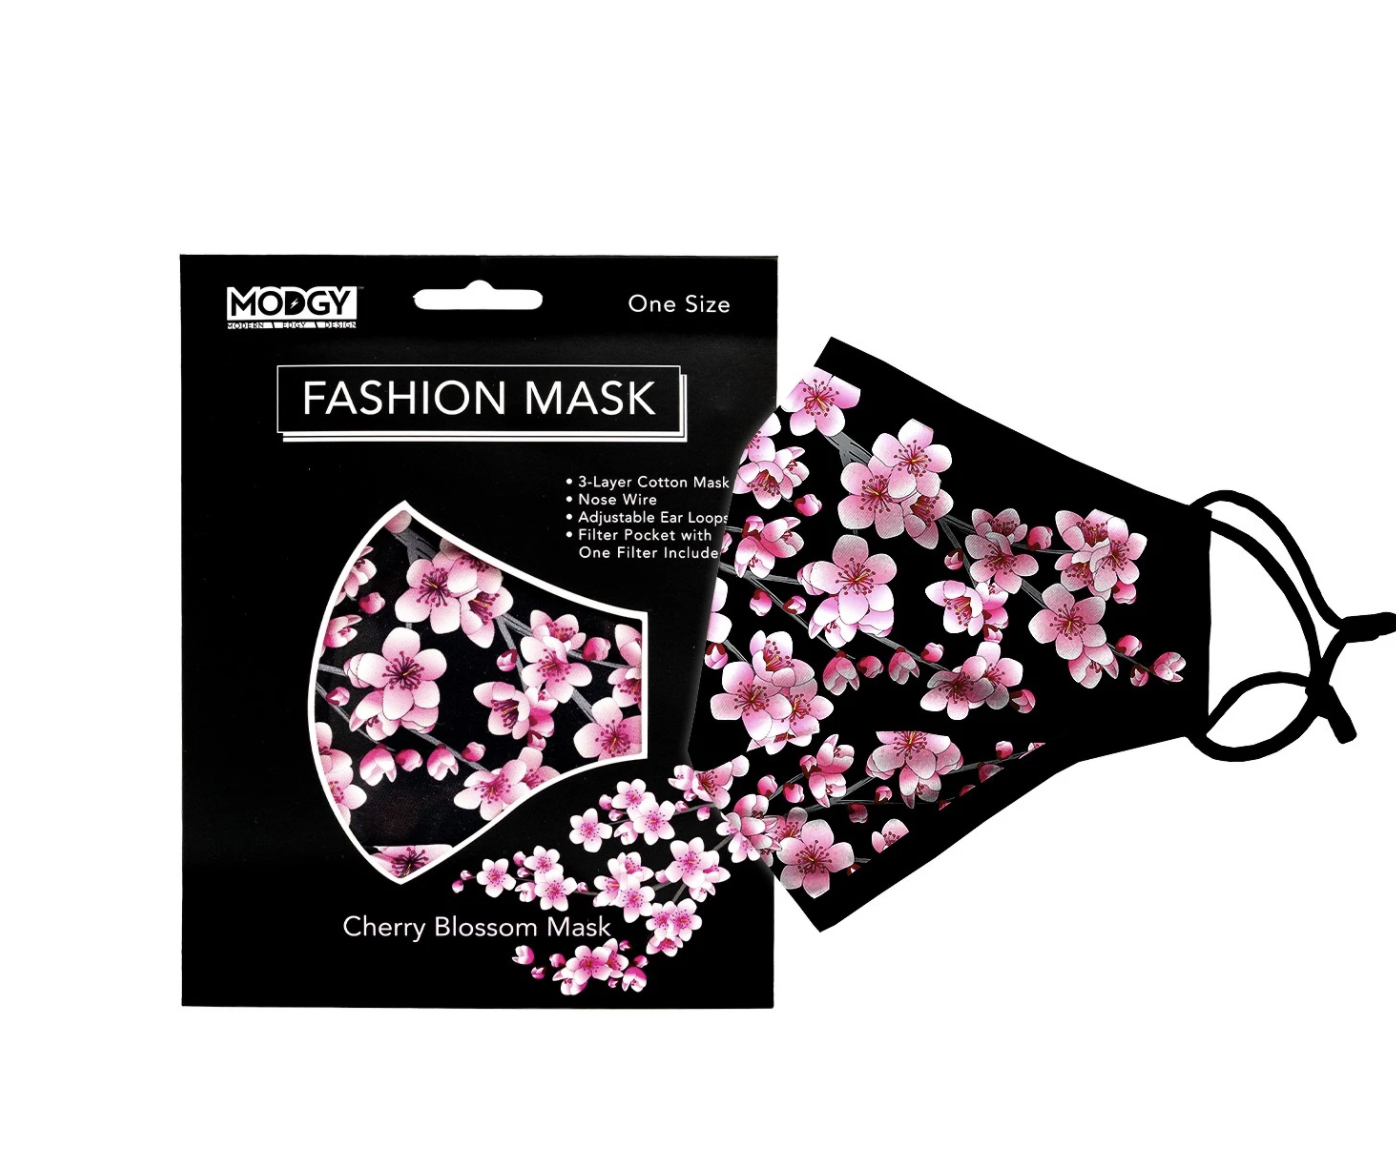 Modgy Face Mask Cherry Blossom